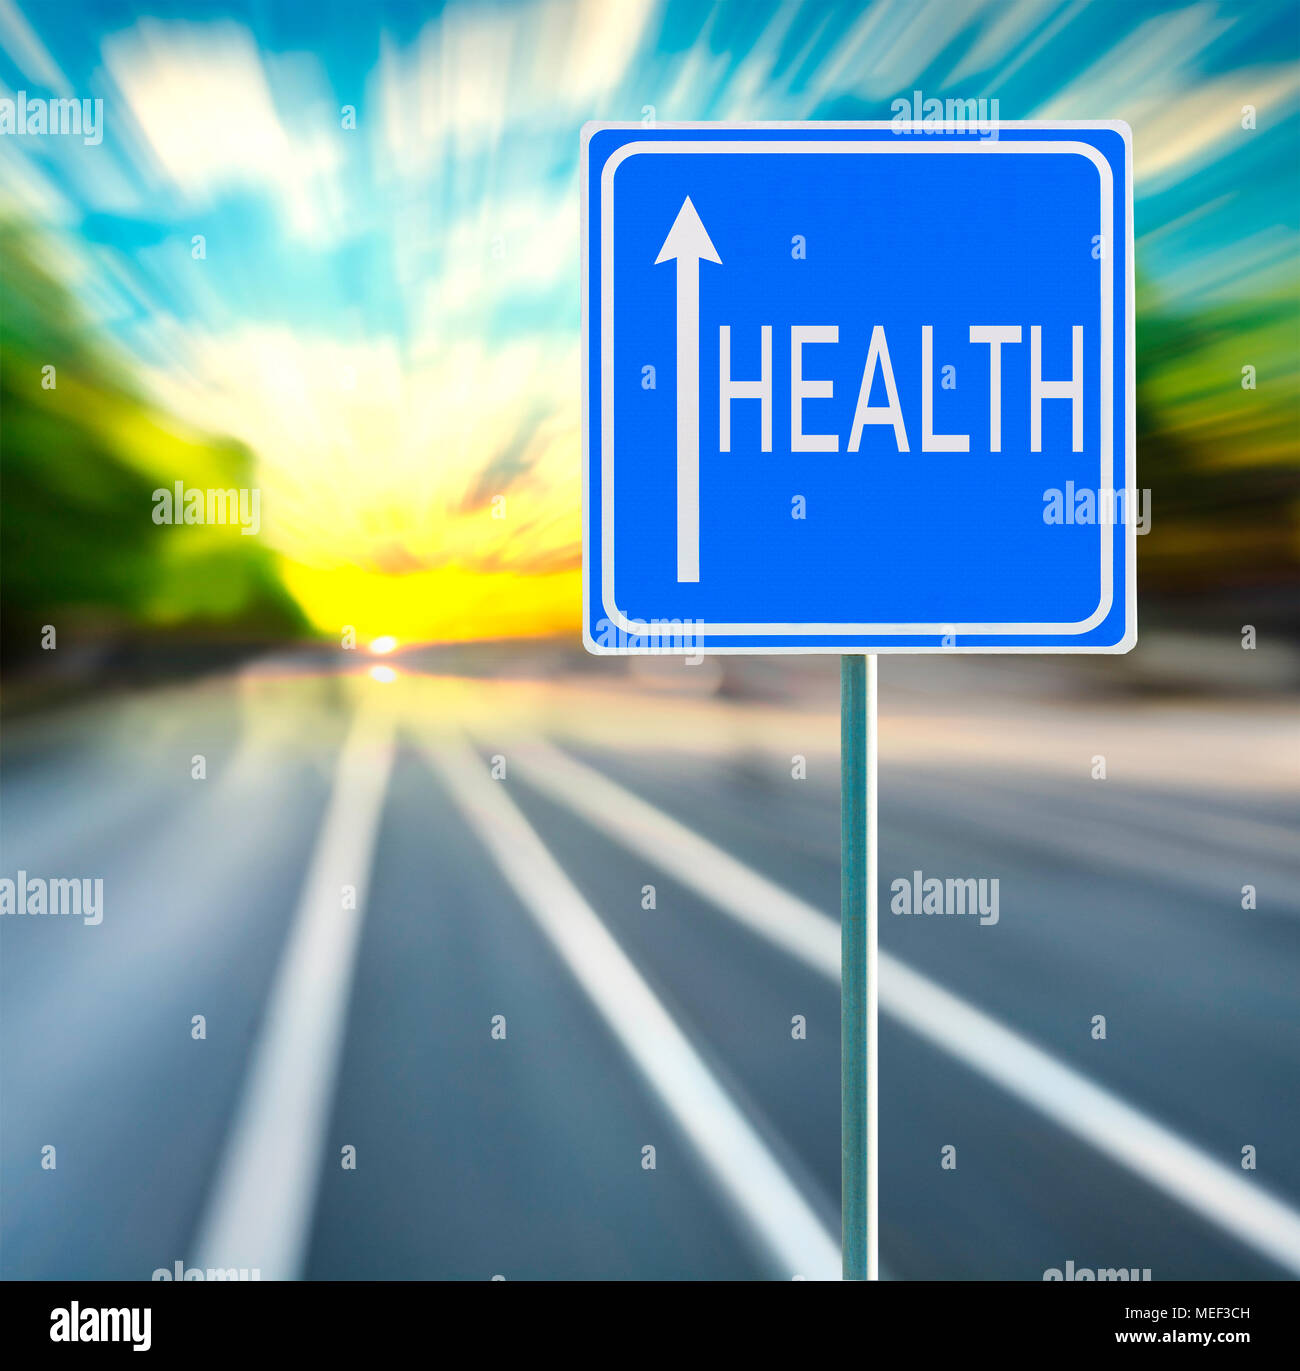 Health motivational phrase on blue road sign with arrow and blurred speedy background in sunset. Copy space. - Stock Image